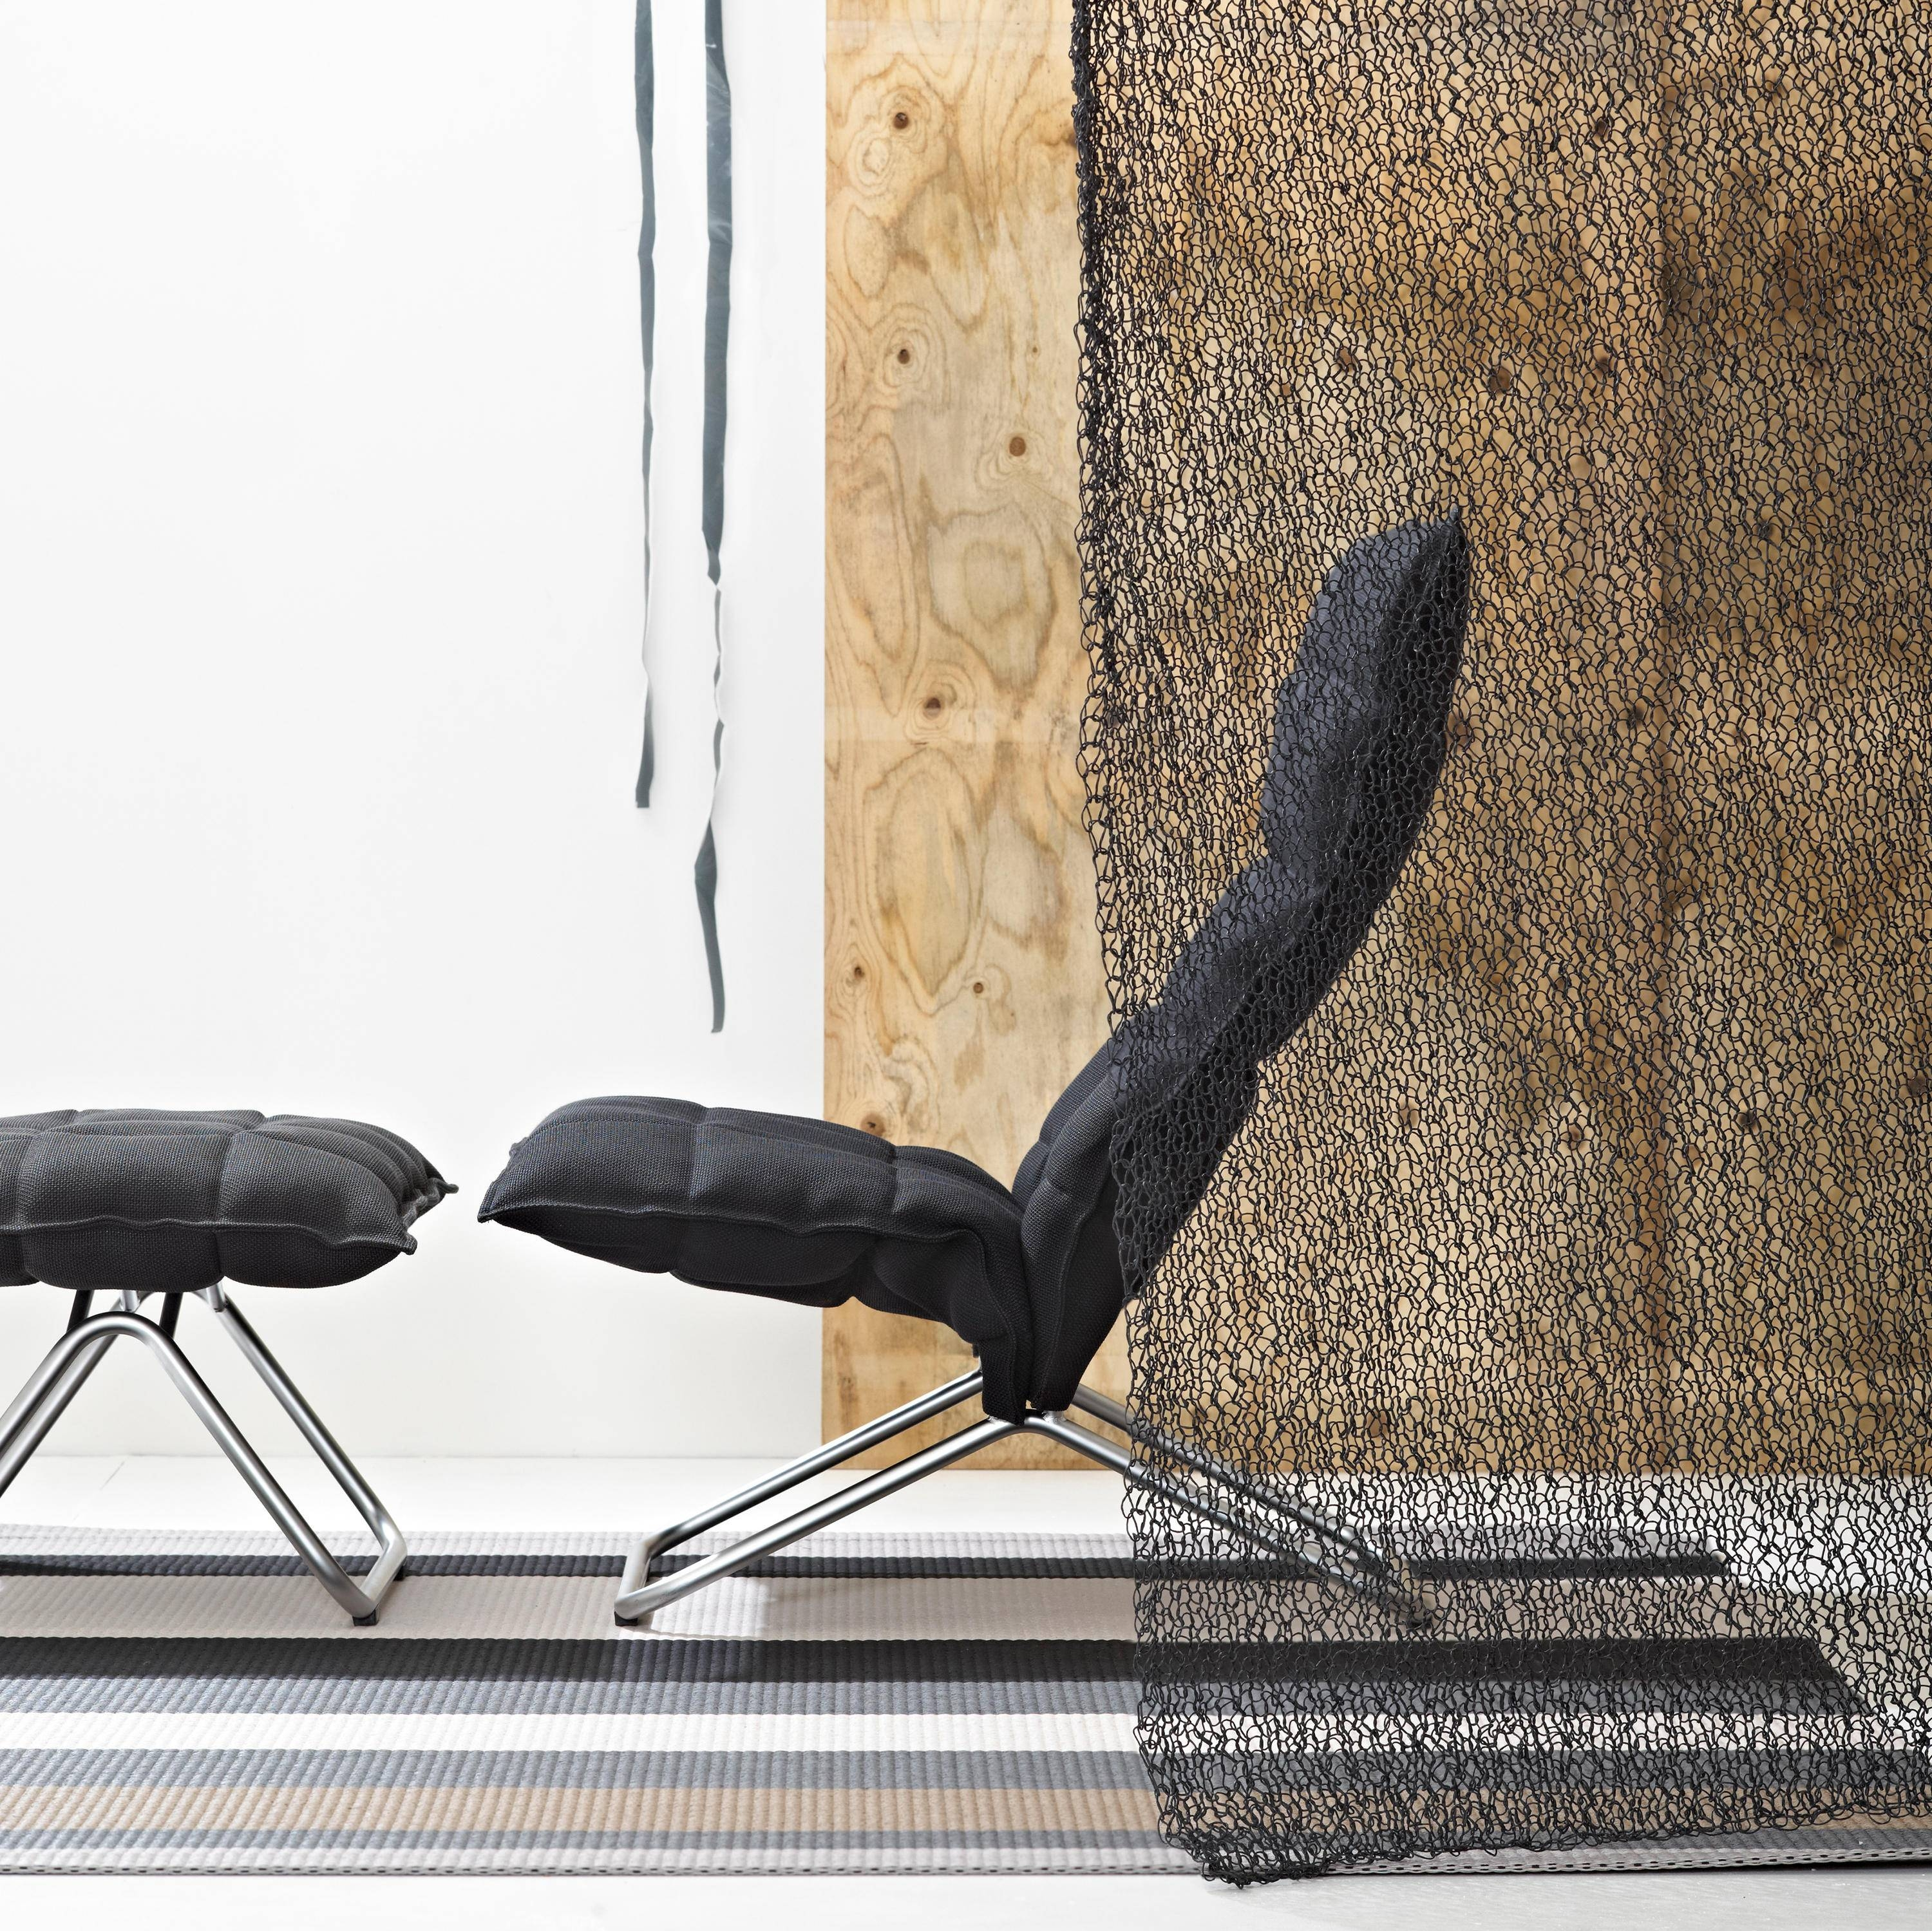 K Chair | Narrow | Swivel - Armchairs From Woodnotes | Architonic in Narrow Armchairs (Image 17 of 30)